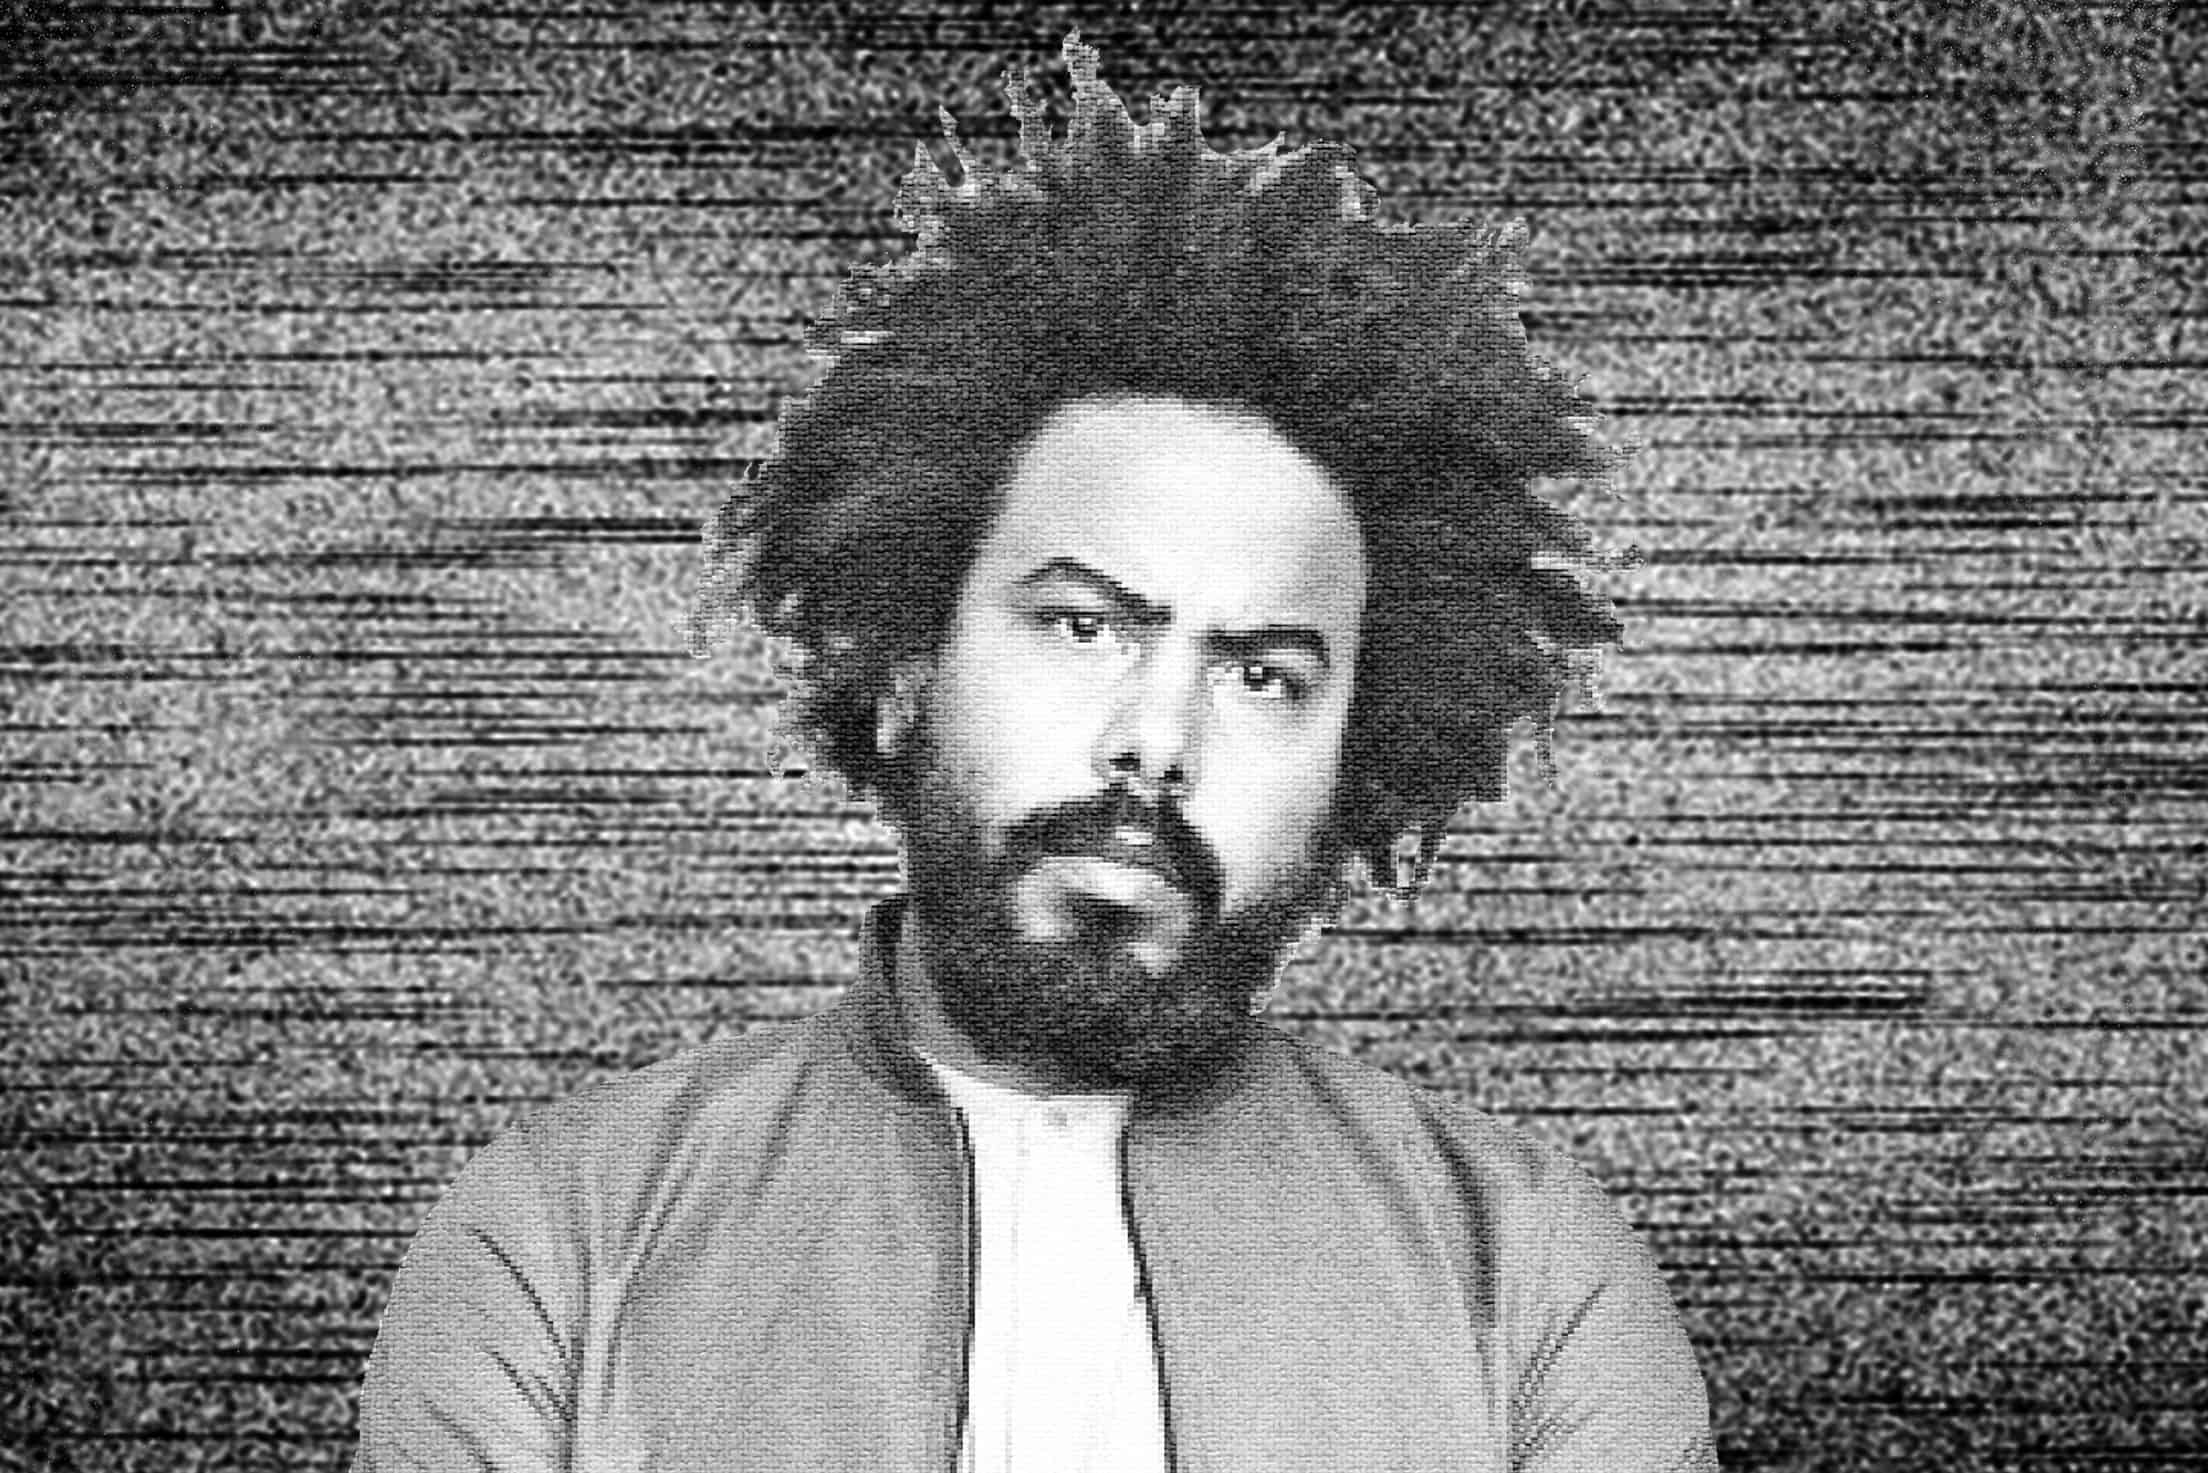 JILLIONAIRE – CONTRIBUTE TO THE PROCESS